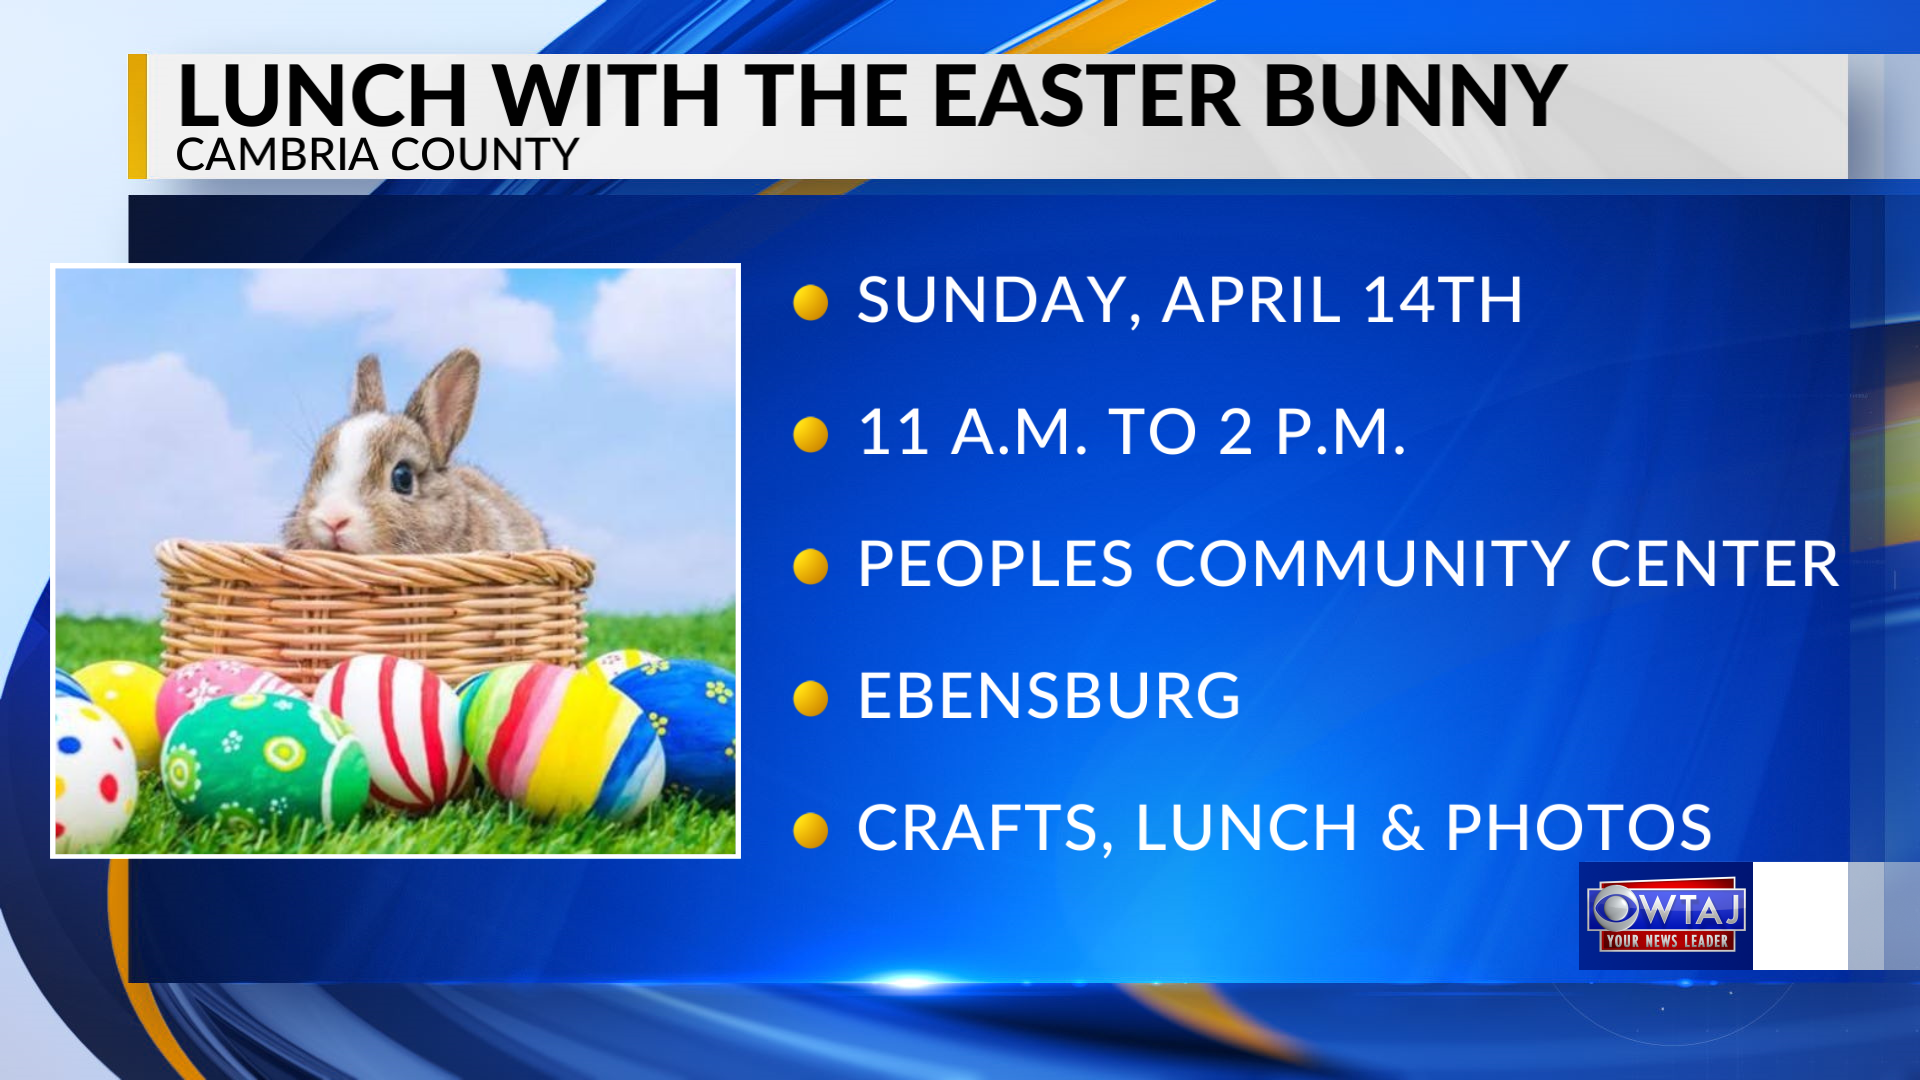 EASTER BUNNY LUNCH CHYRON_1554332374822.png.jpg